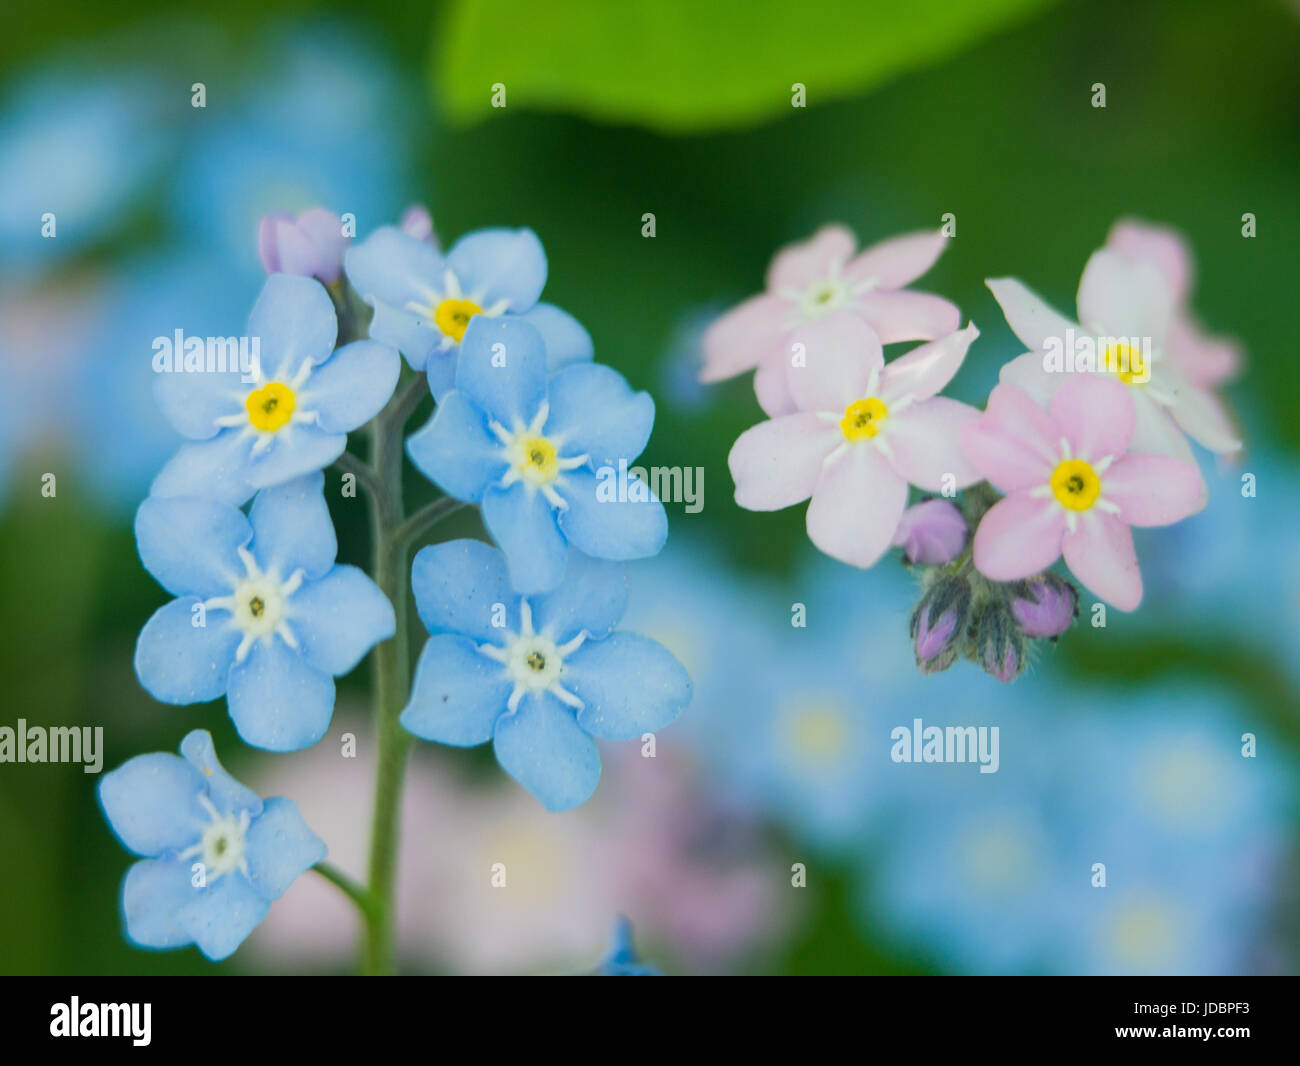 Flowers forget me nots blue and pink as a concept of boy and girl flowers forget me nots blue and pink as a concept of boy and girl attitude of the sexes of love and harmonious relations in the family mightylinksfo